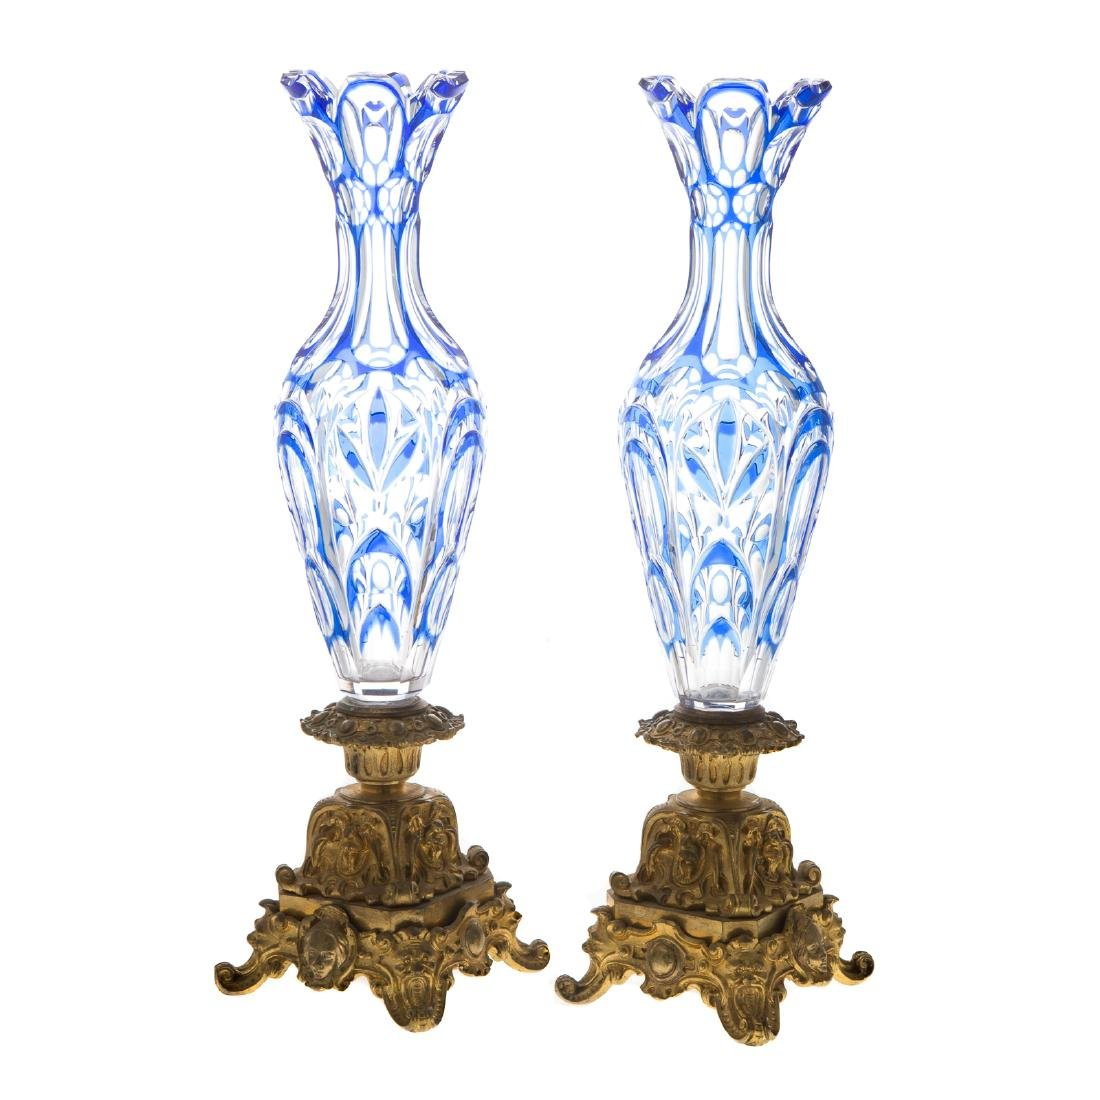 Pair Bohemian style glass and gilt-bronze vases - 2